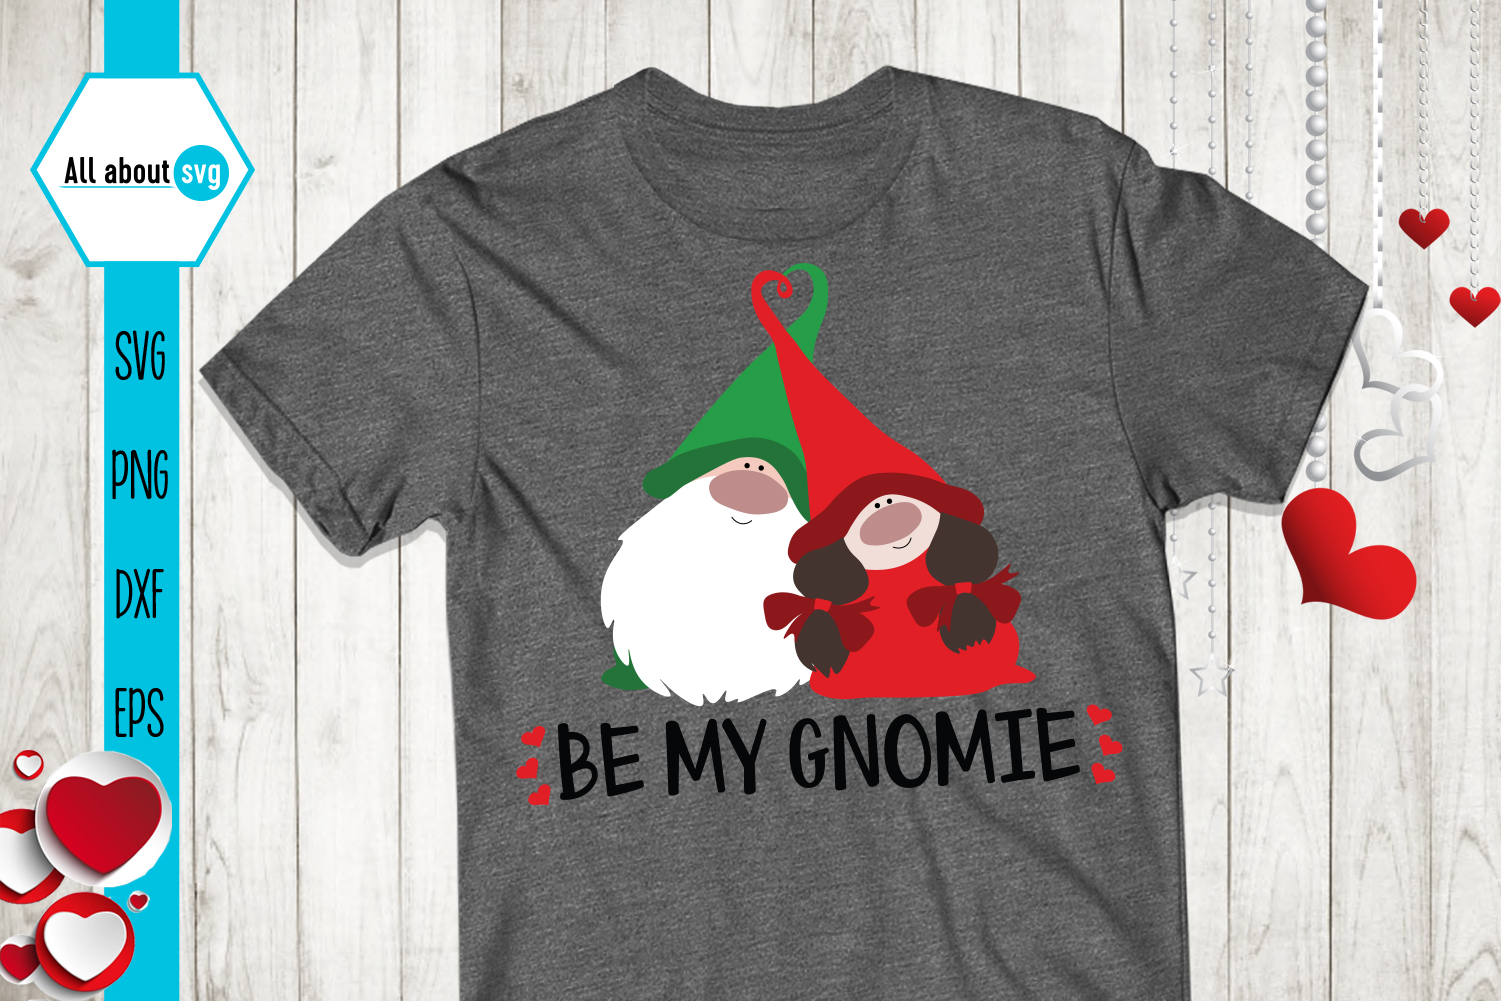 Be My Gnomie Svg, Gnome Svg, Valentine's Day svg example image 3